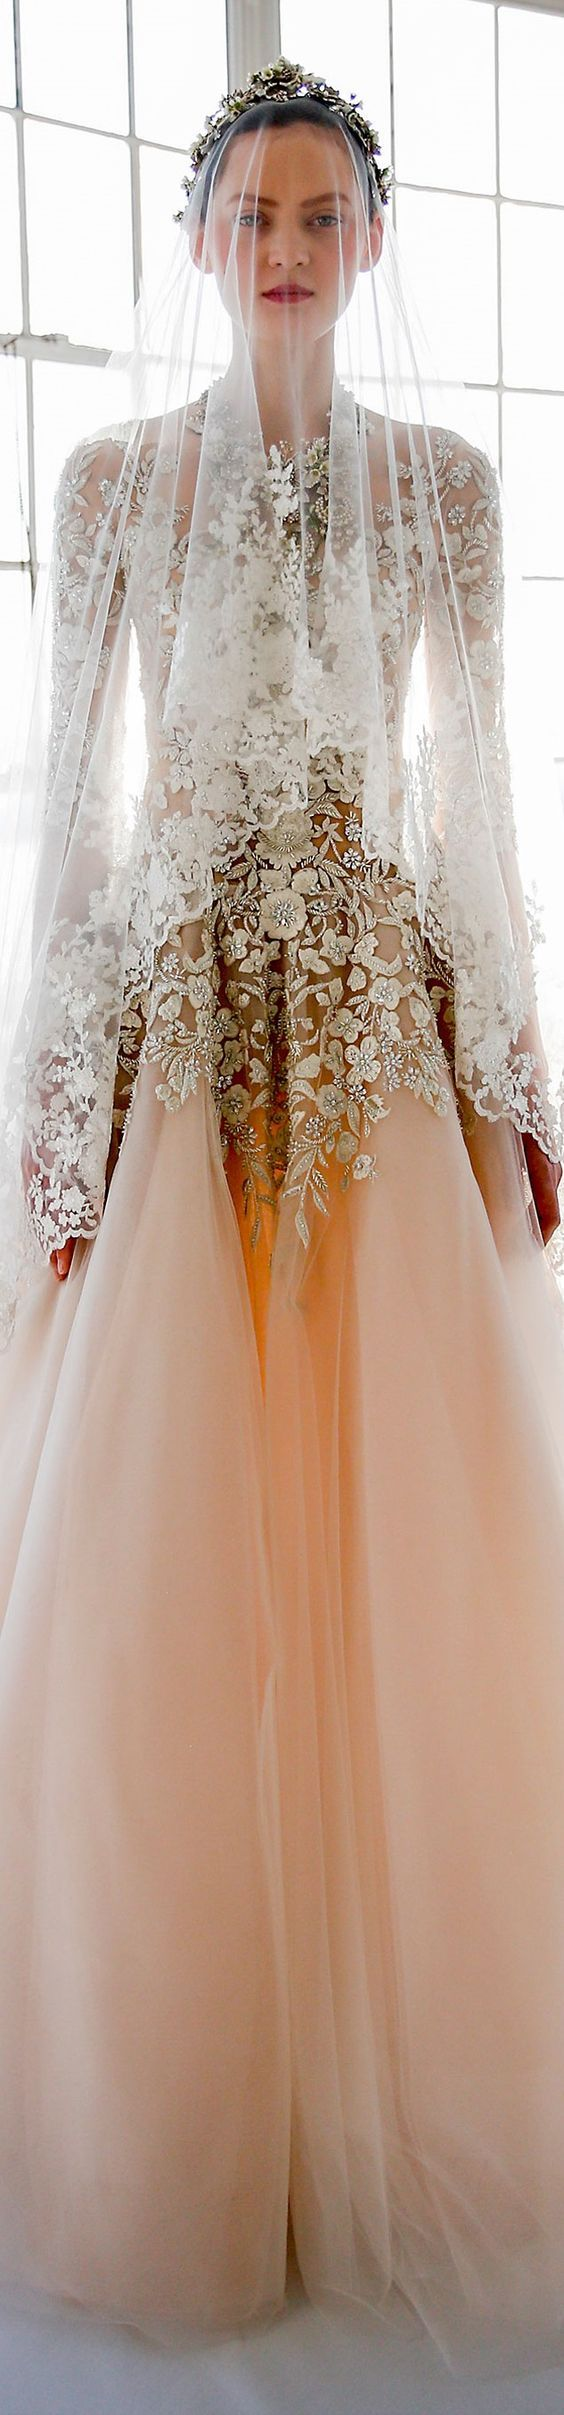 25 cute marchesa wedding dress ideas on pinterest marchesa marchesa spring 2017 wedding dress junglespirit Image collections